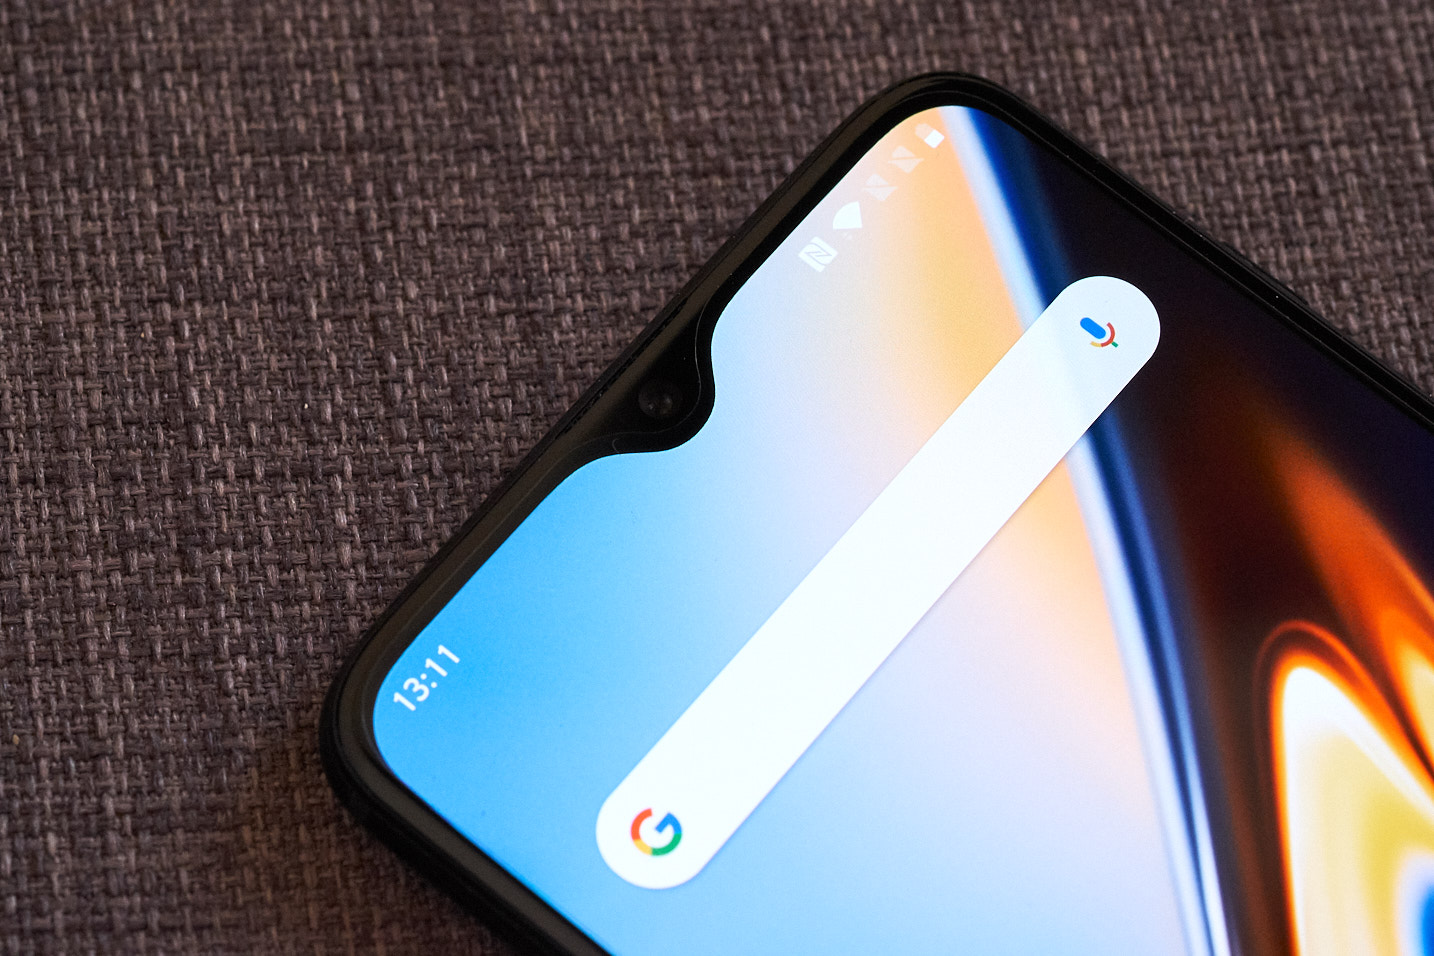 Notch of the OnePlus 6T